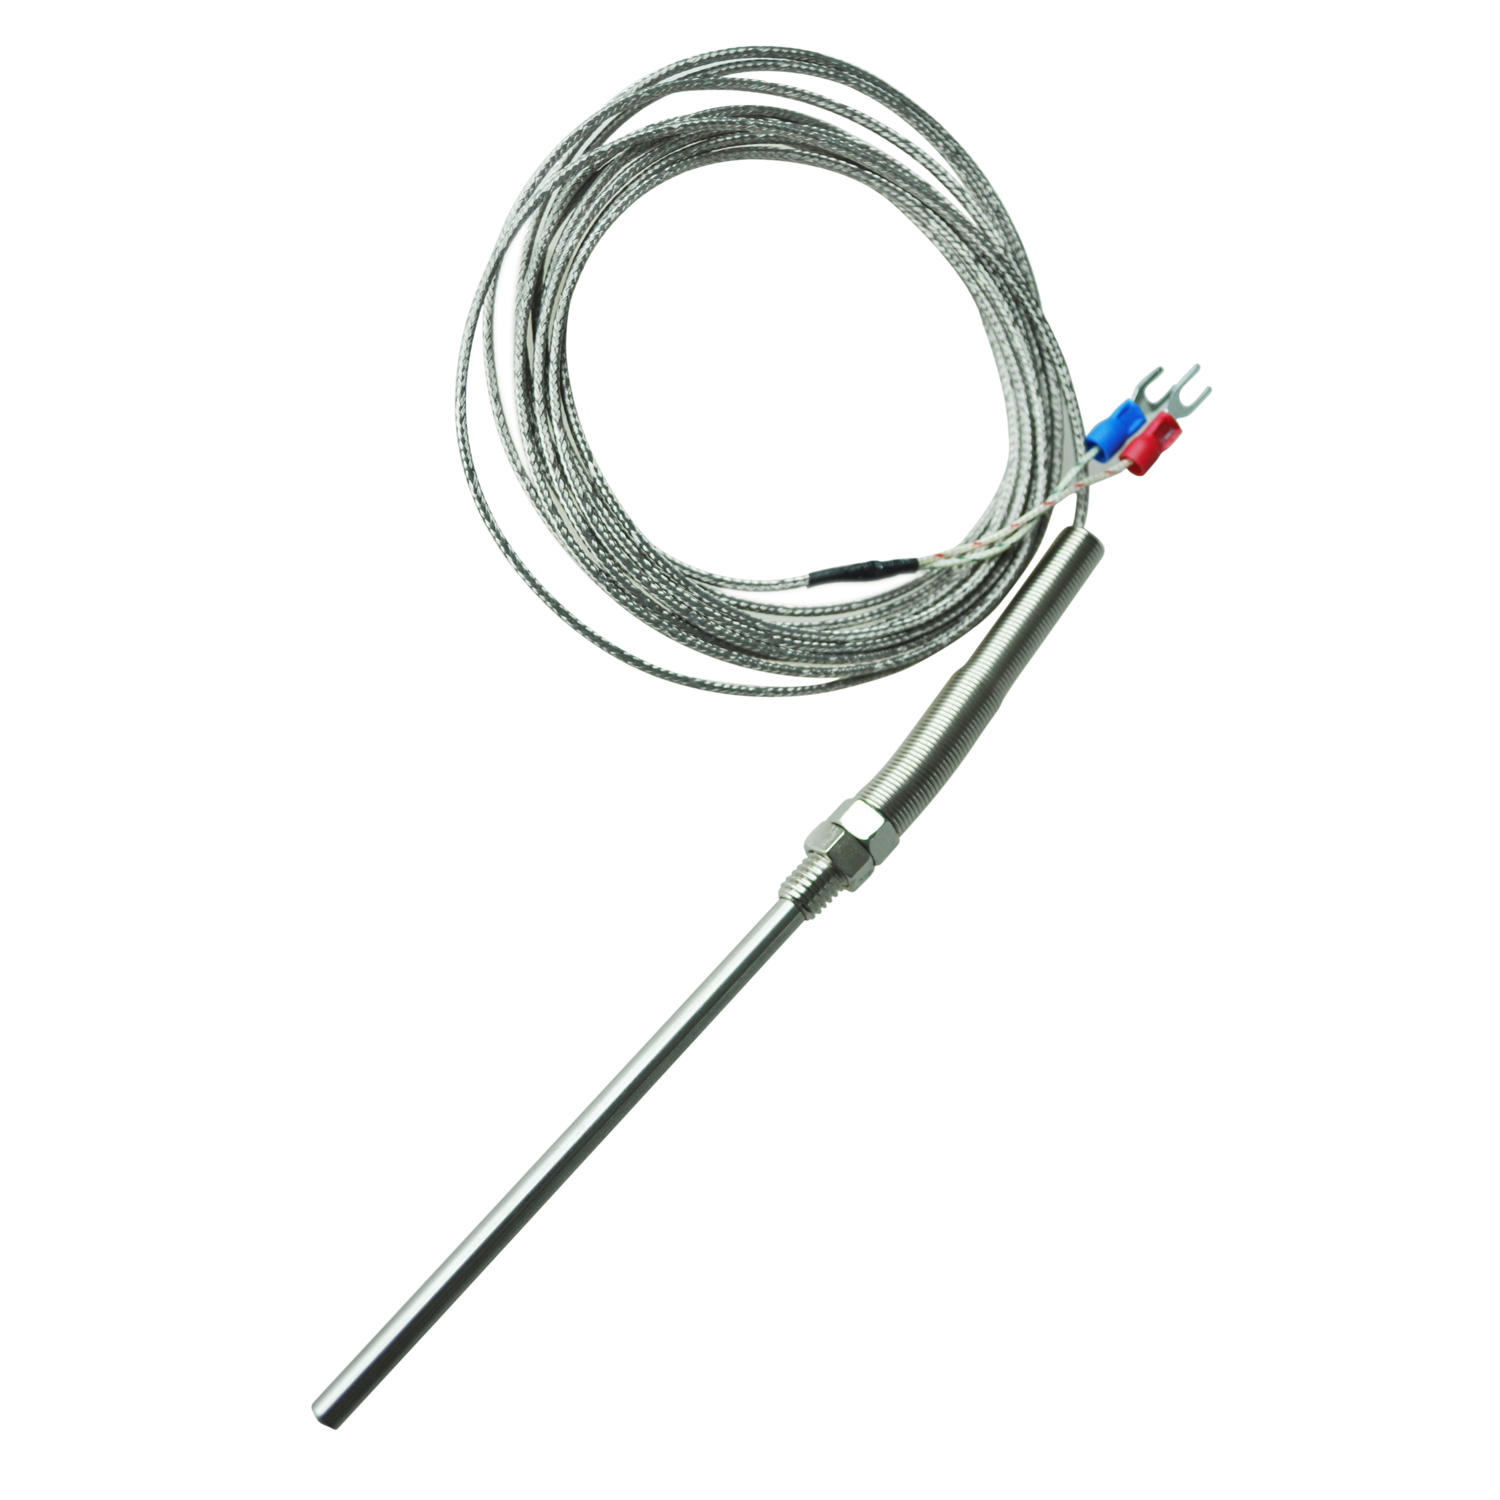 mylb 100 400c 13mm thread 5mm probe k type thermocouple